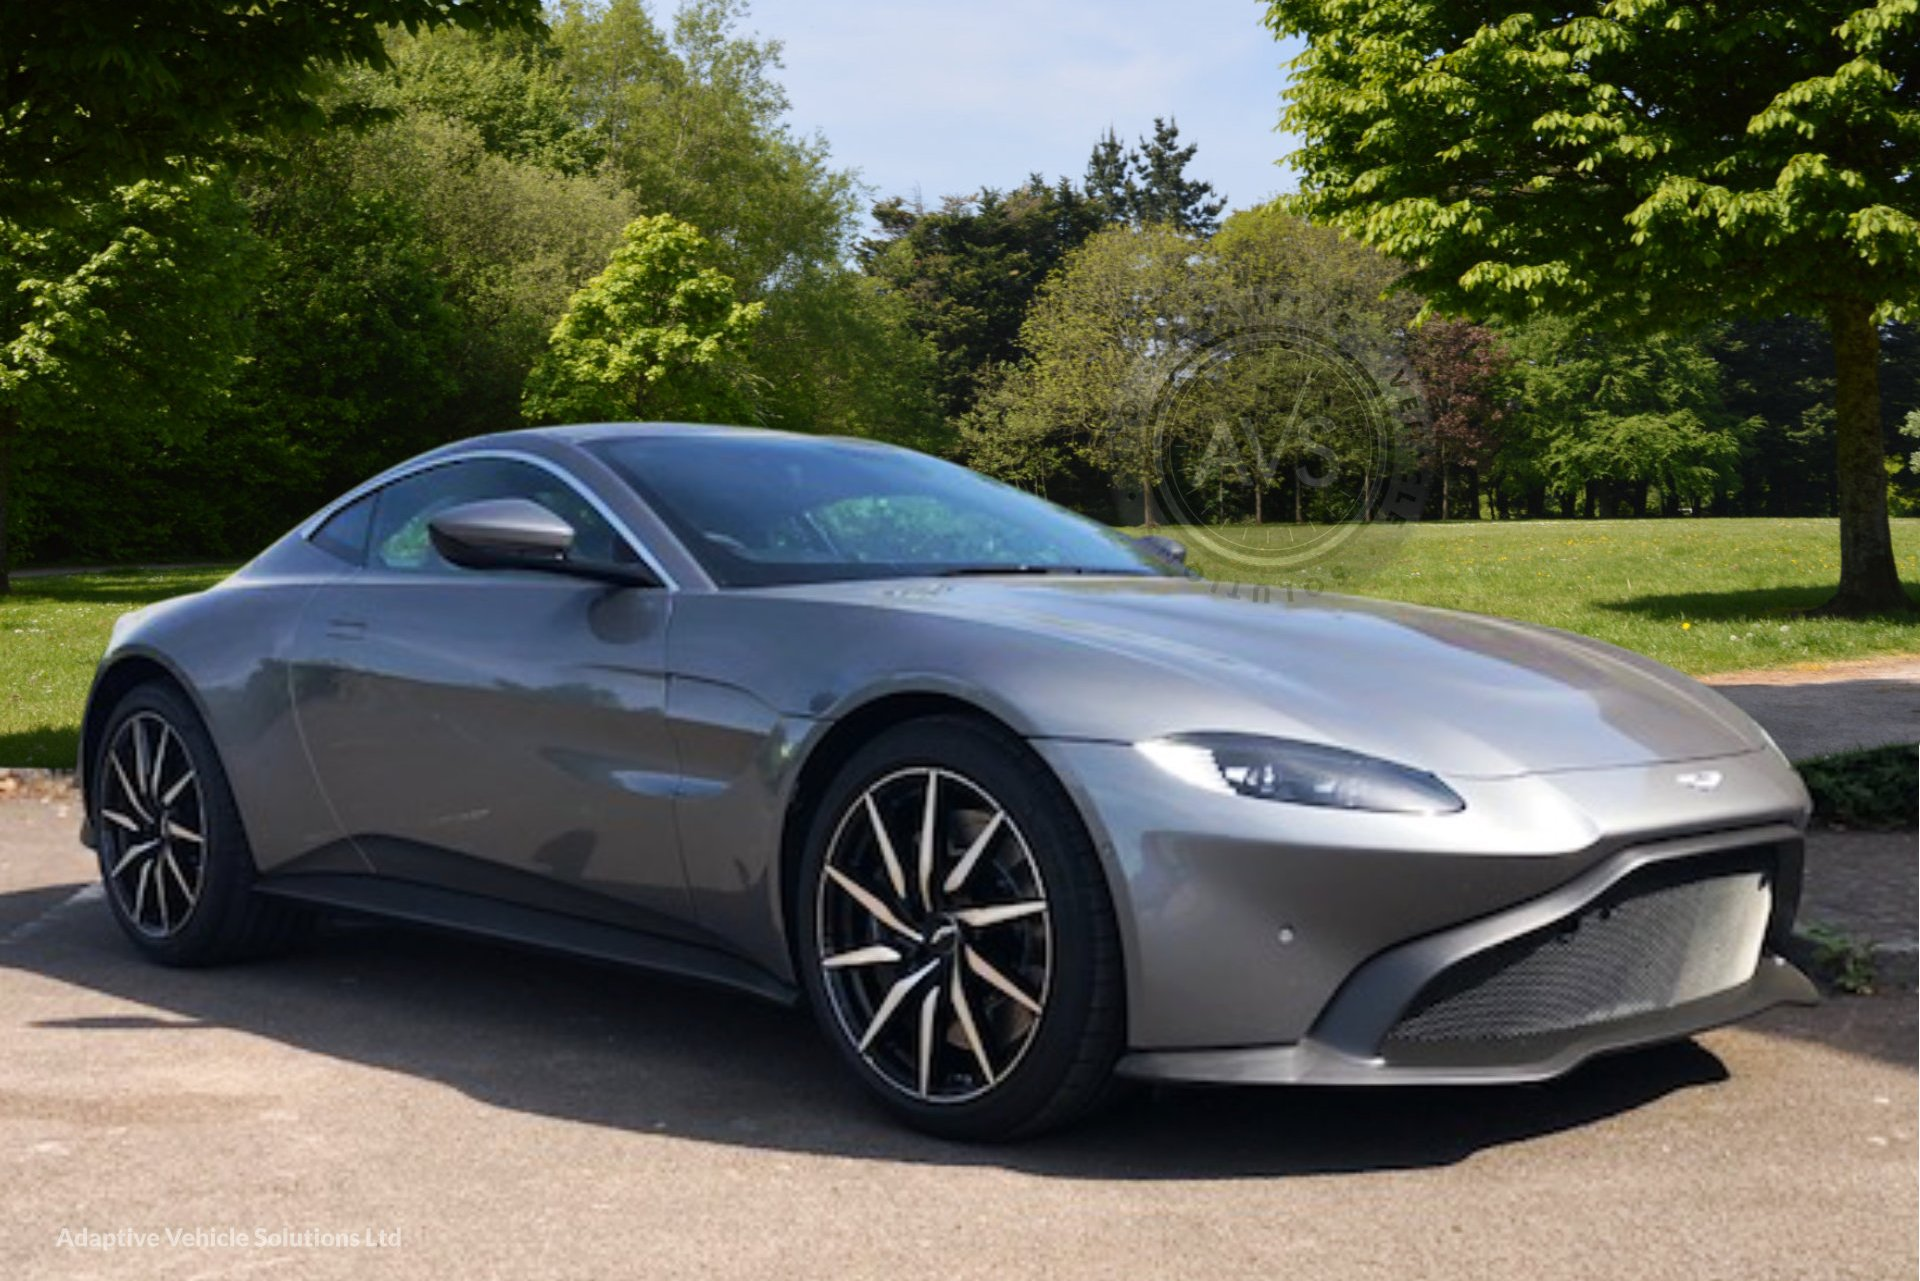 2019my Aston Martin Vantage Coupe Adaptive Vehicle Solutions Ltd